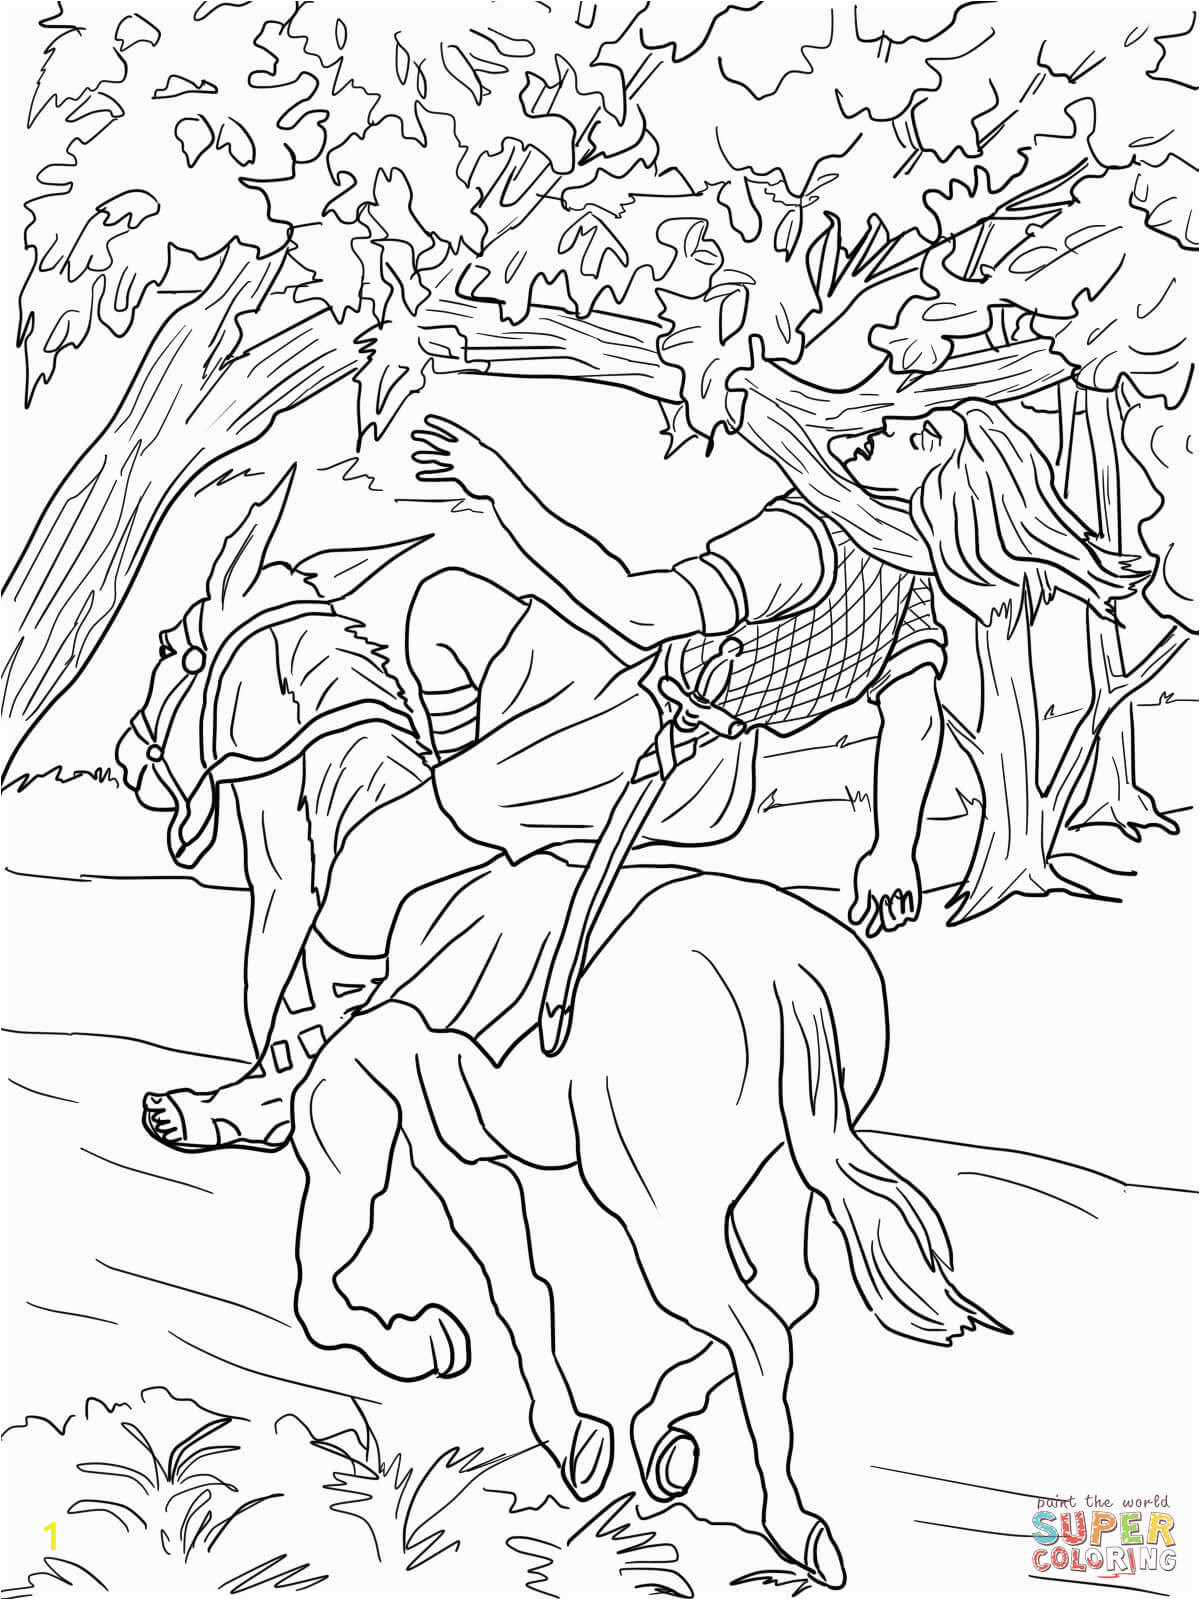 King David and Absalom Coloring Pages King David and Absalom Coloring Page Sketch Coloring Page